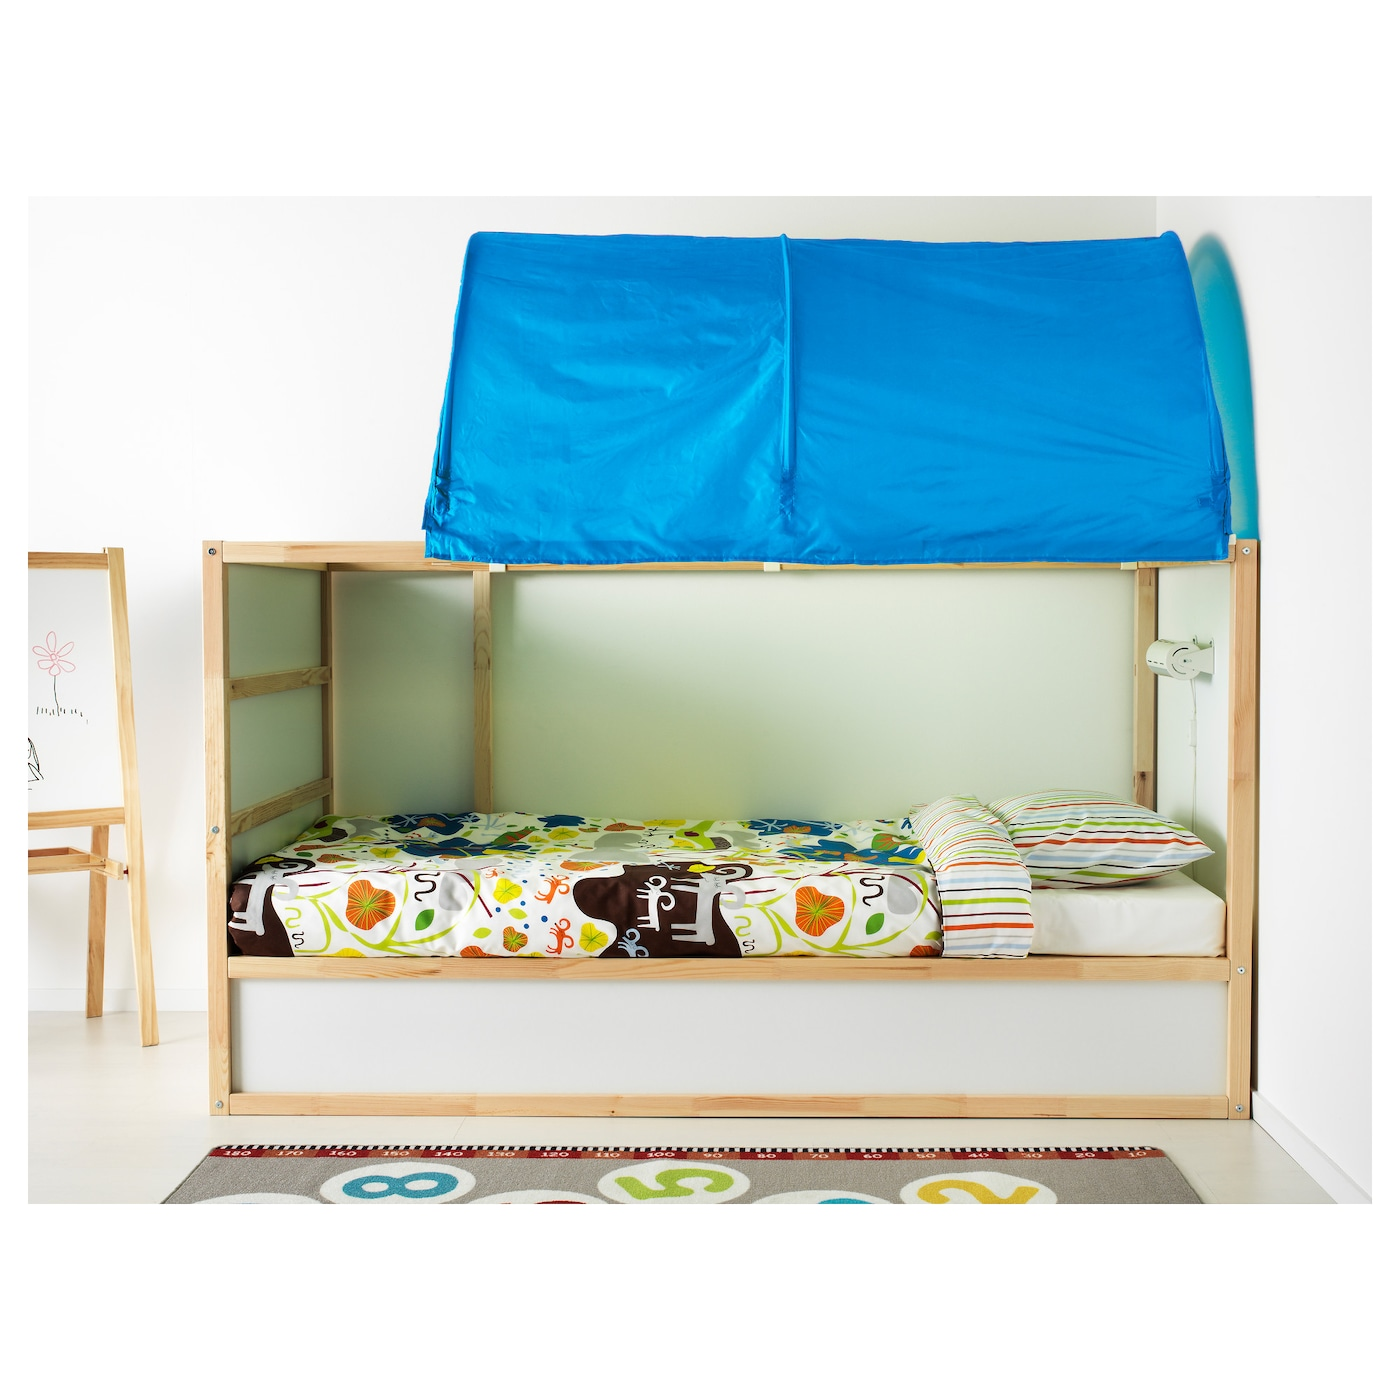 kura reversible bed white pine 90x200 cm ikea 12160 | kura reversible bed white pine 0352703 pe544180 s5